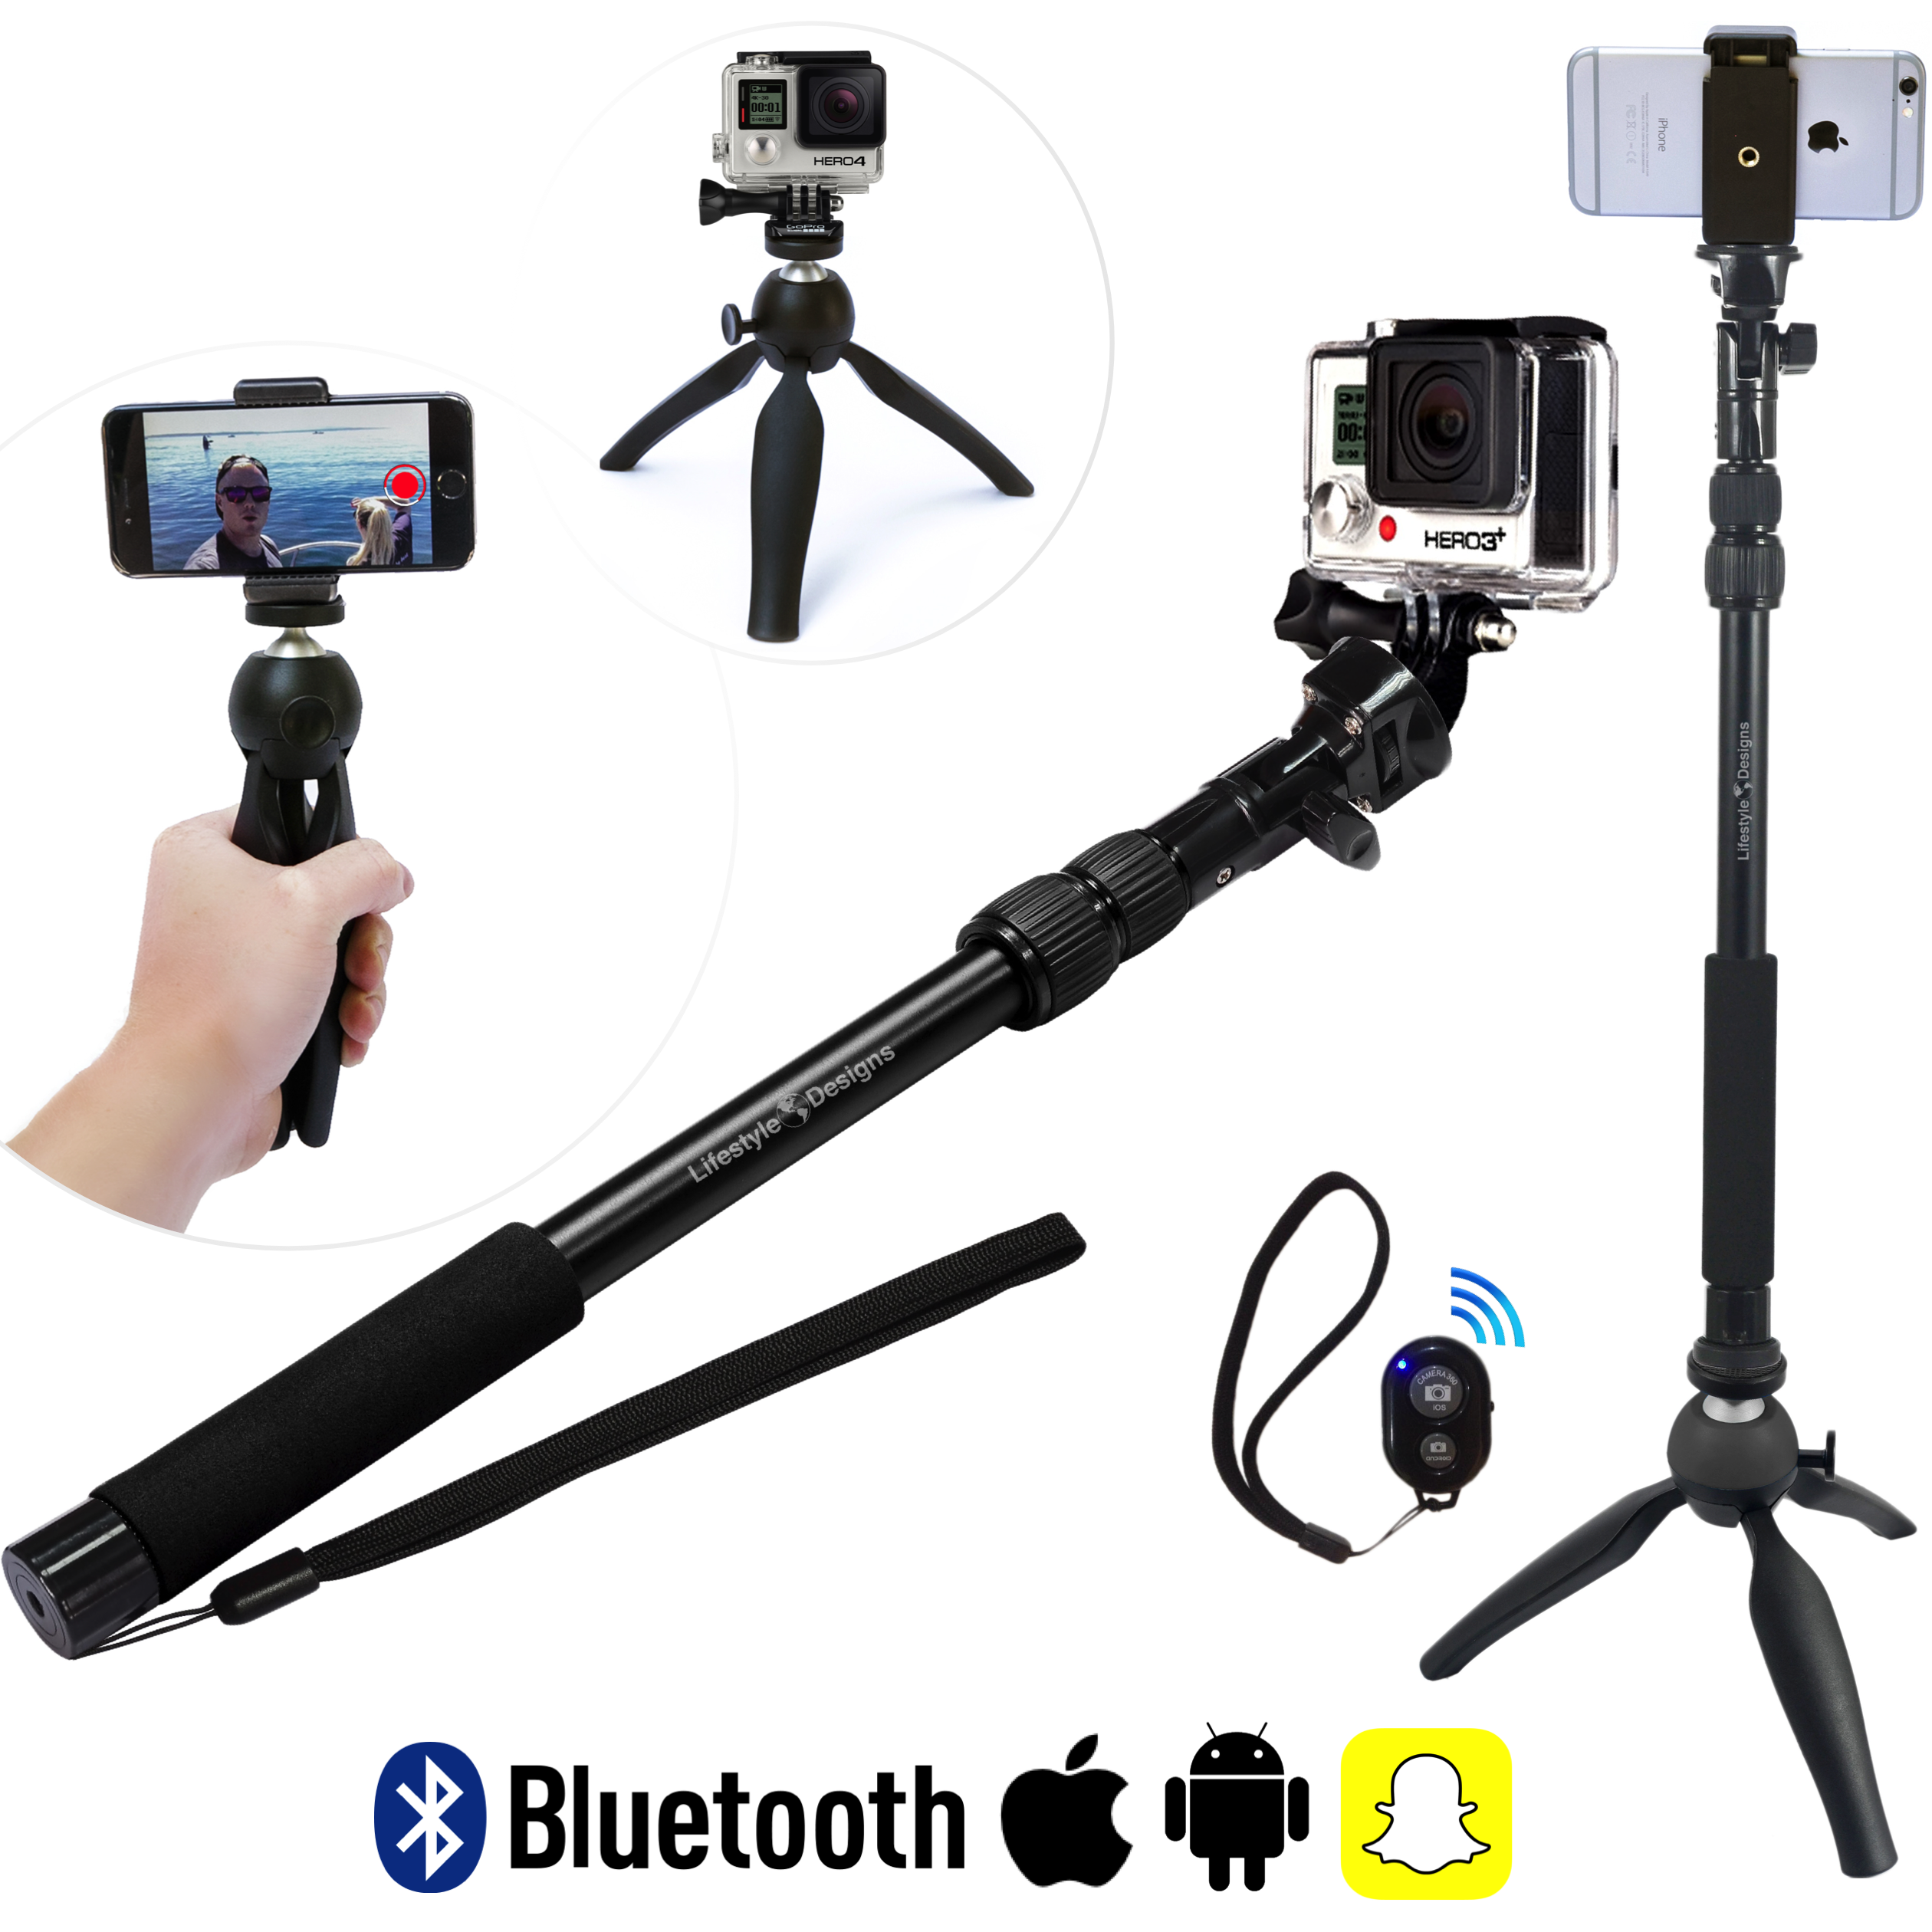 hd gopro selfie stick with tripod snapchat remote. Black Bedroom Furniture Sets. Home Design Ideas